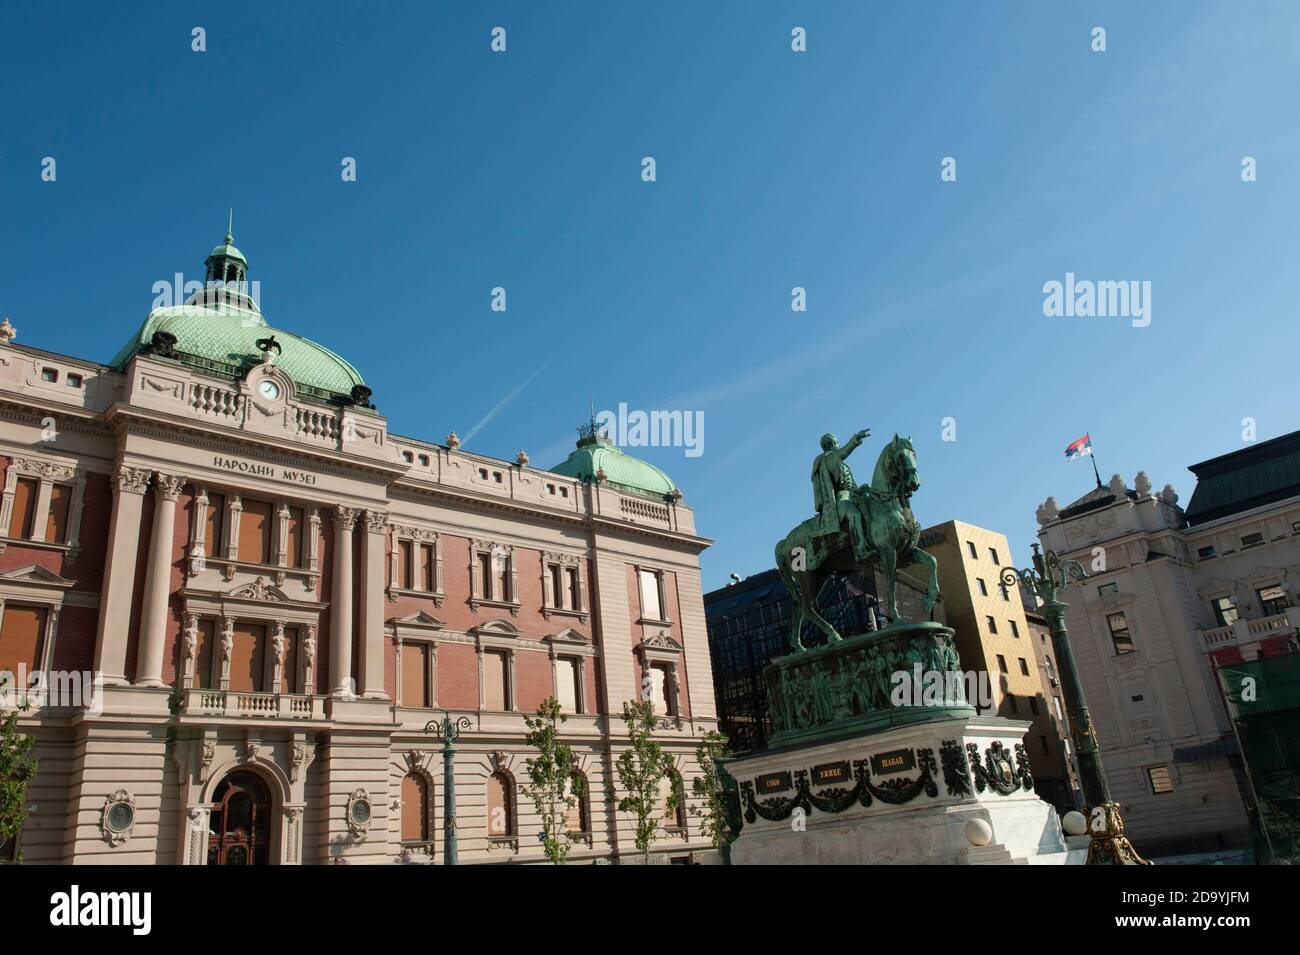 Belgrade, Serbia. July 23rd 2019  Prince Mihailo Monument in front of the National Museum of Serbia, Republic Square, Belgrade. Stock Photo